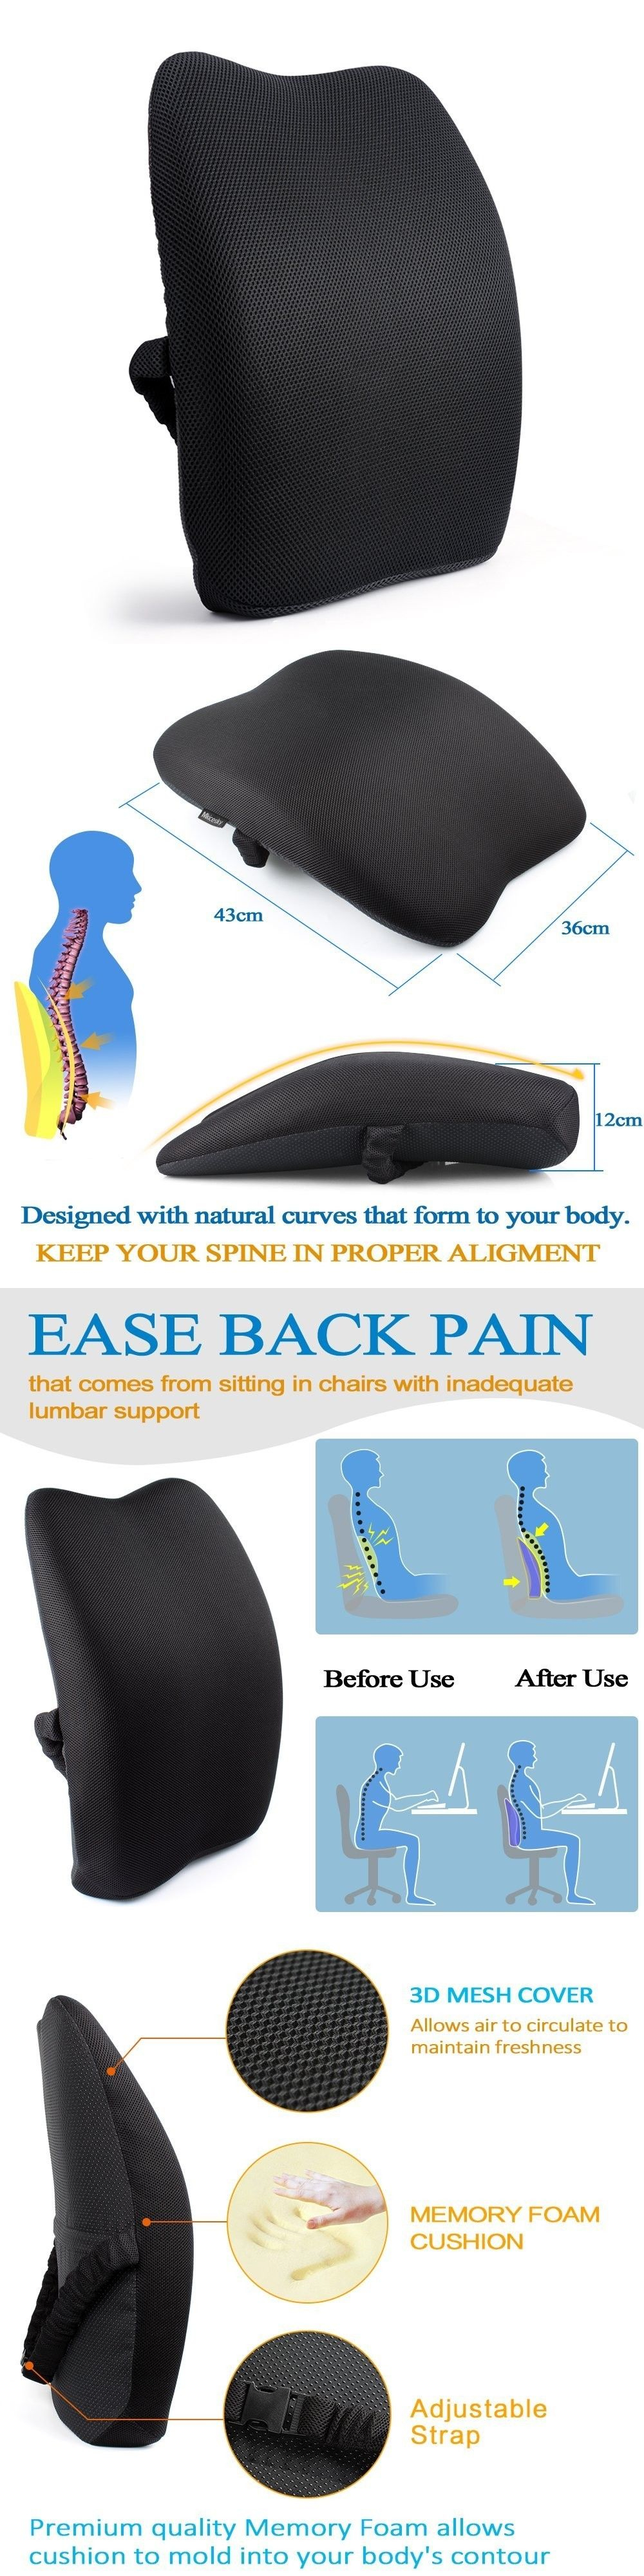 pillow pin travel best neck online pillows orthopedic quality